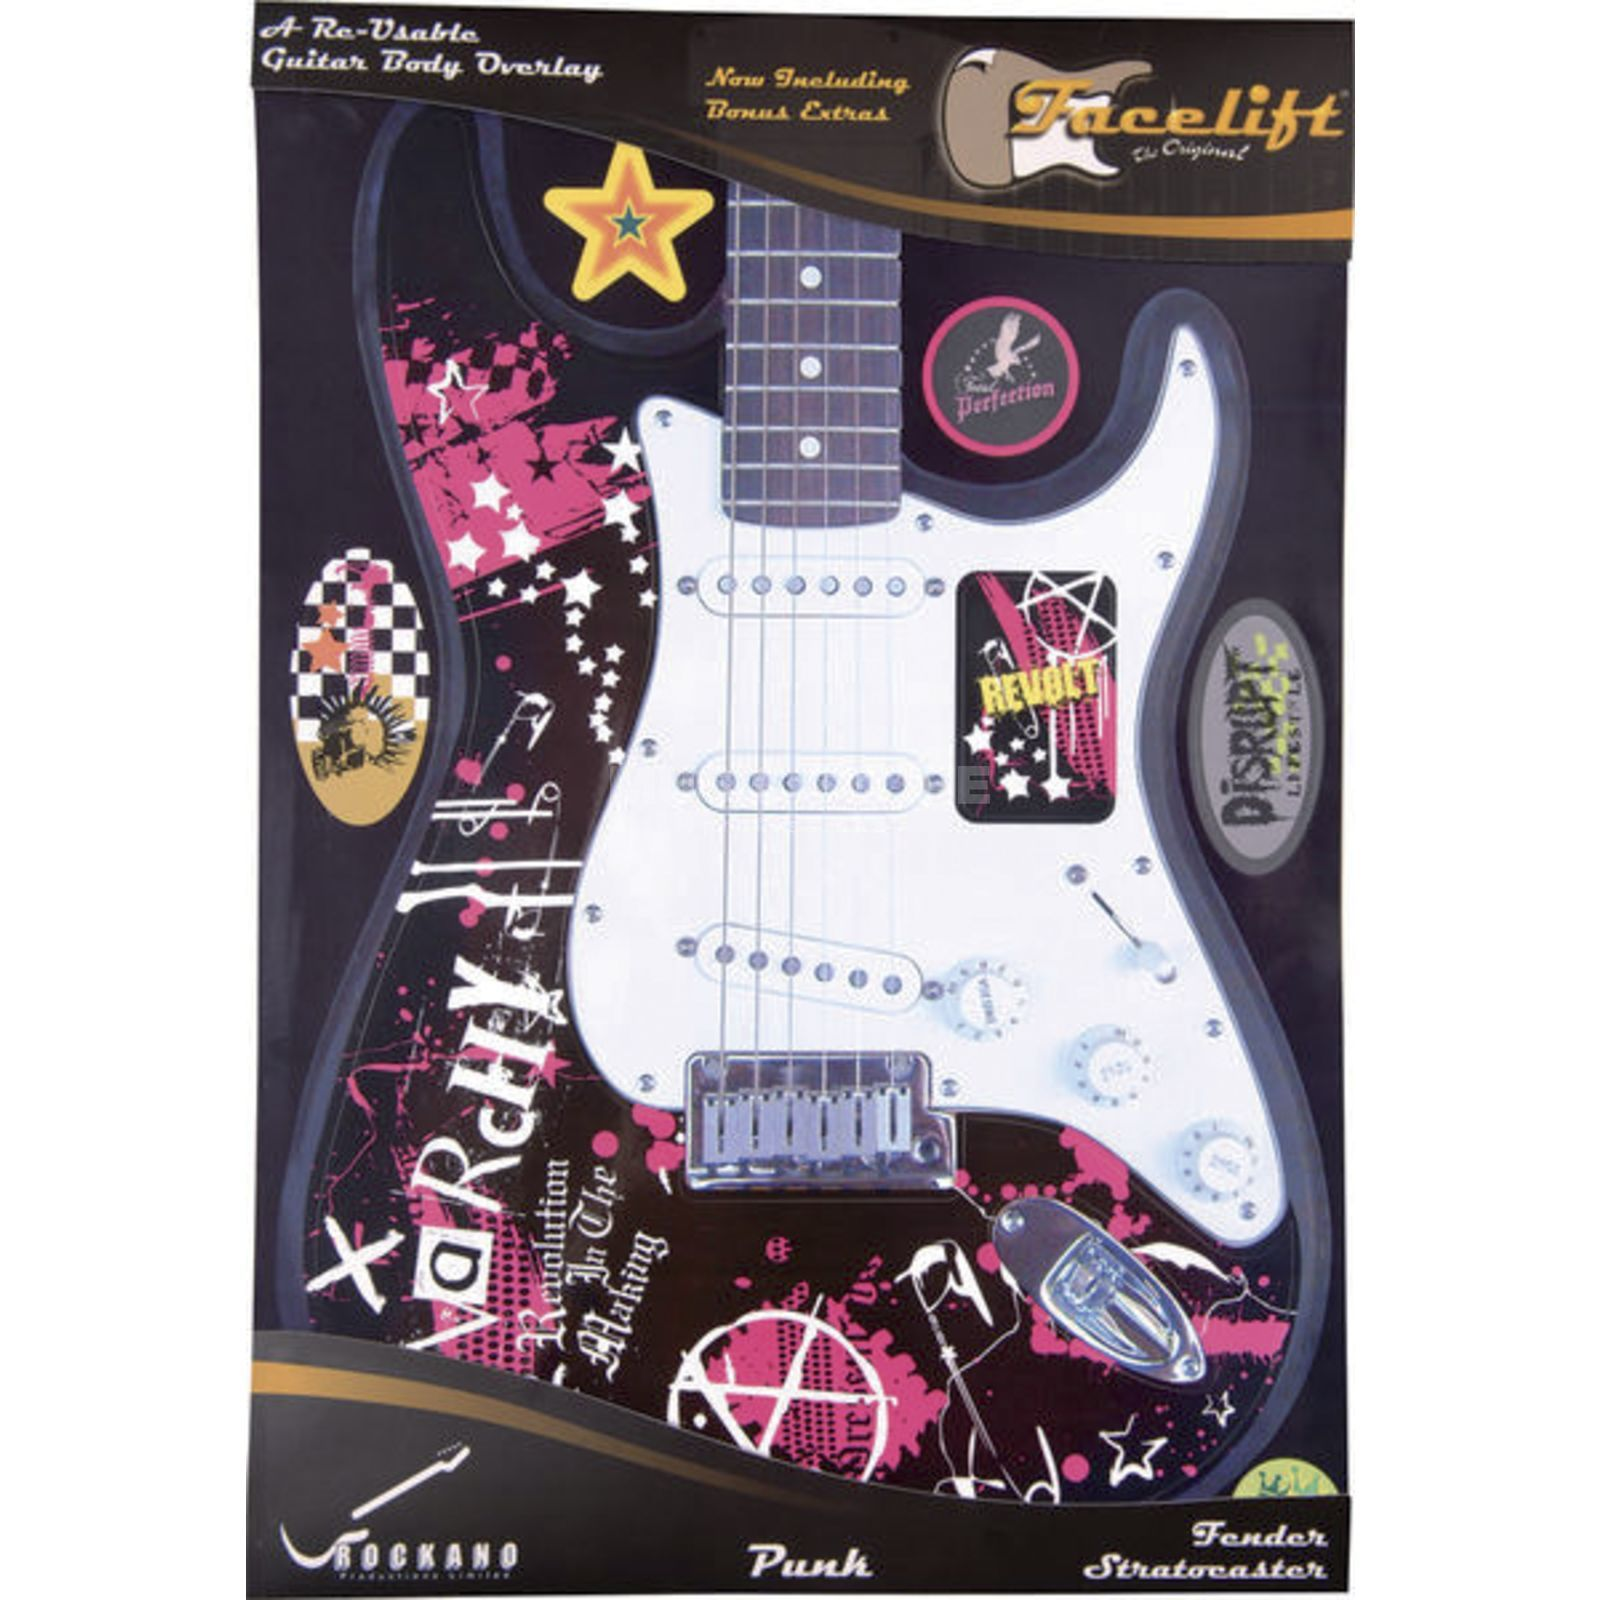 Rockano Guitar Facelift Facelift Punk ST- Style Gitarren Overlay Product Image